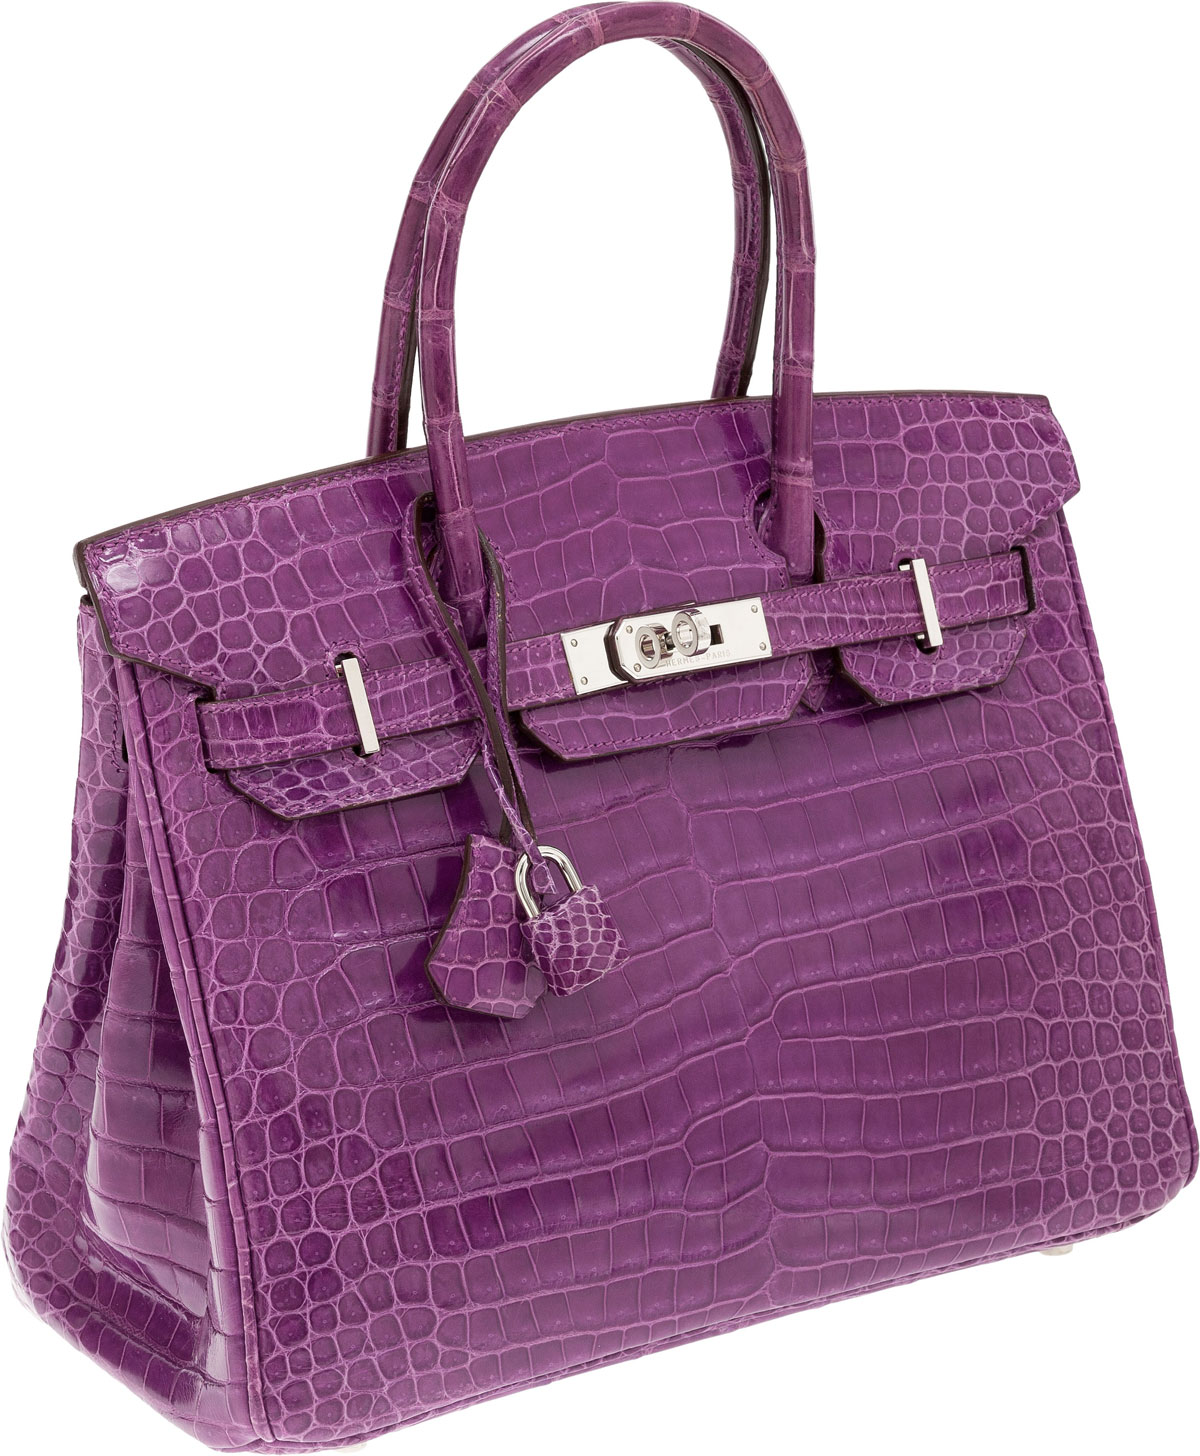 crocodile birkin bag price